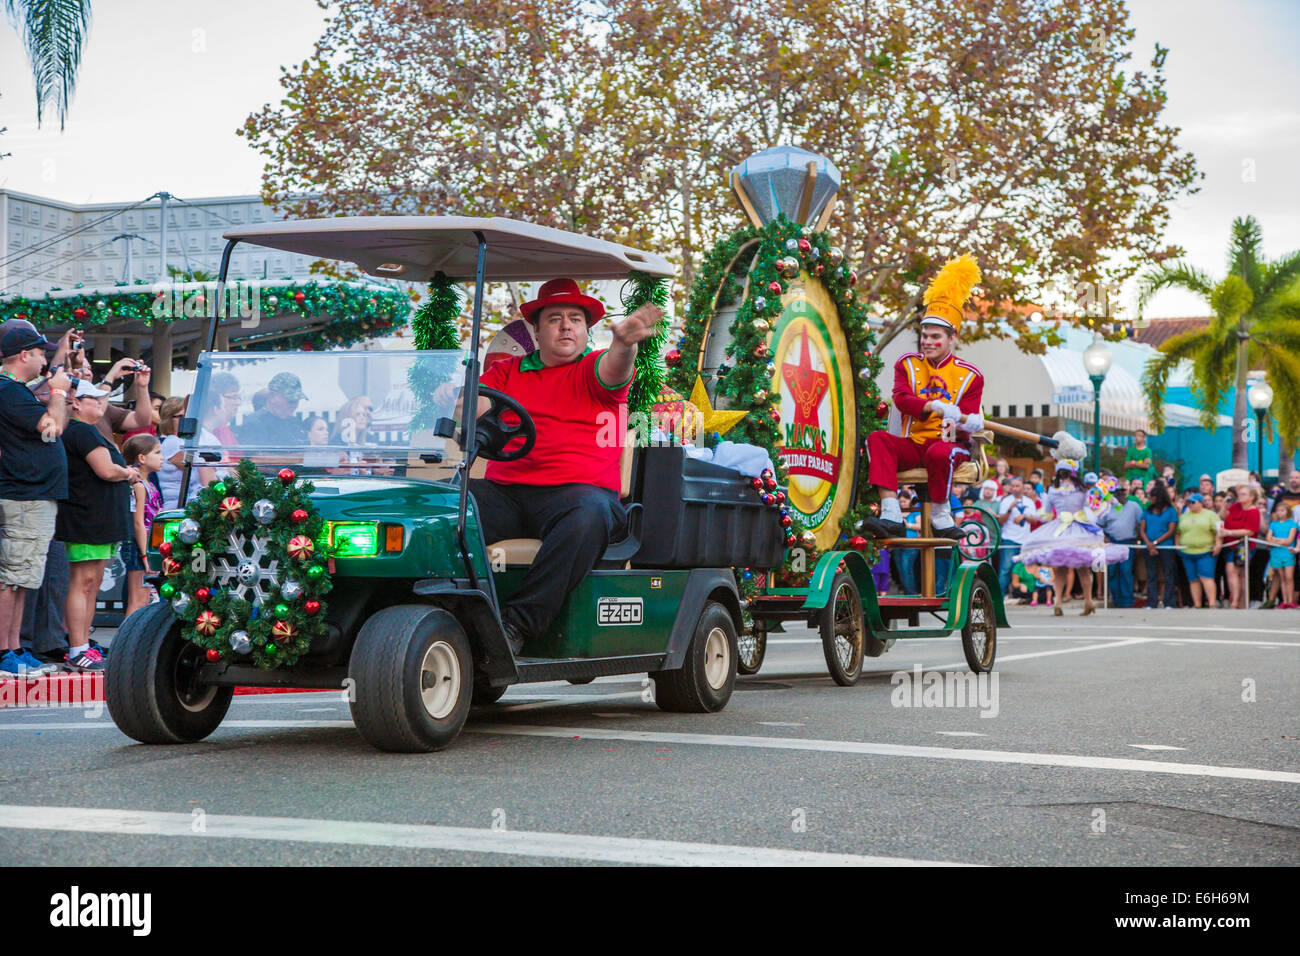 Man driving decorated golf cart pulling large bass drum in Macy's Holiday Parade at Universal Studios in Orlando, - Stock Image